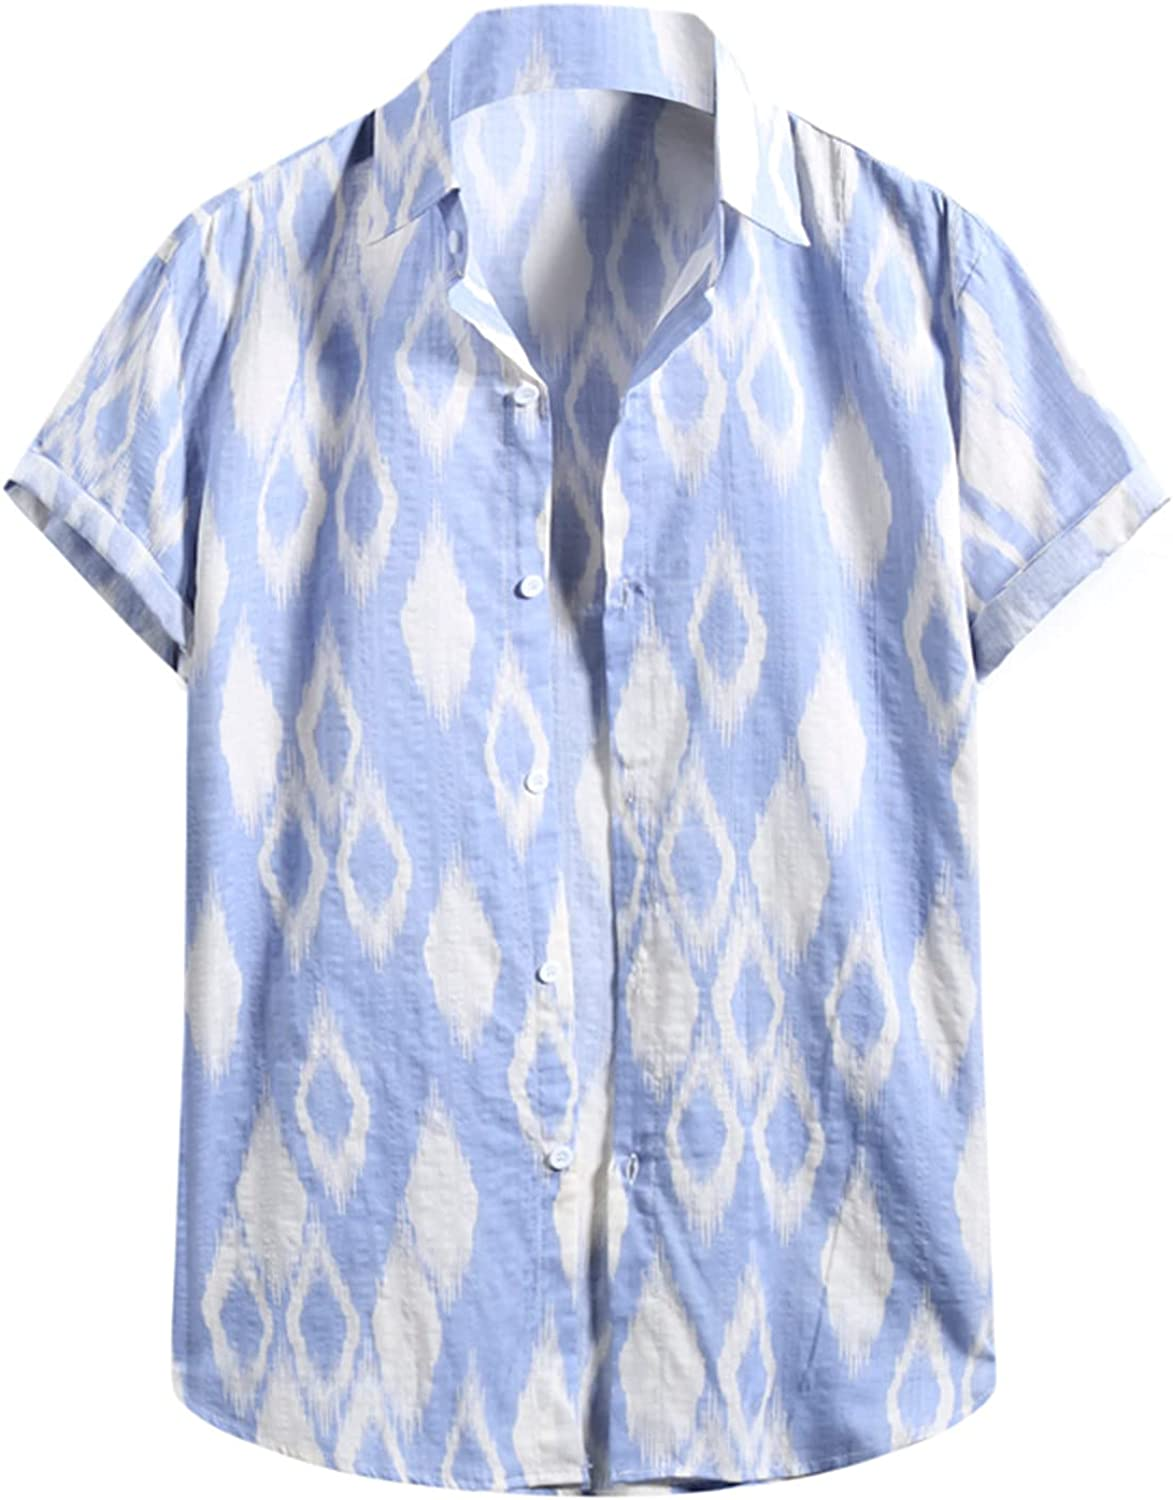 2021 Ranking integrated 1st place Men's Short Sleeve 70% OFF Outlet Shirts Printed Linen Hawaiian Cotton Cas